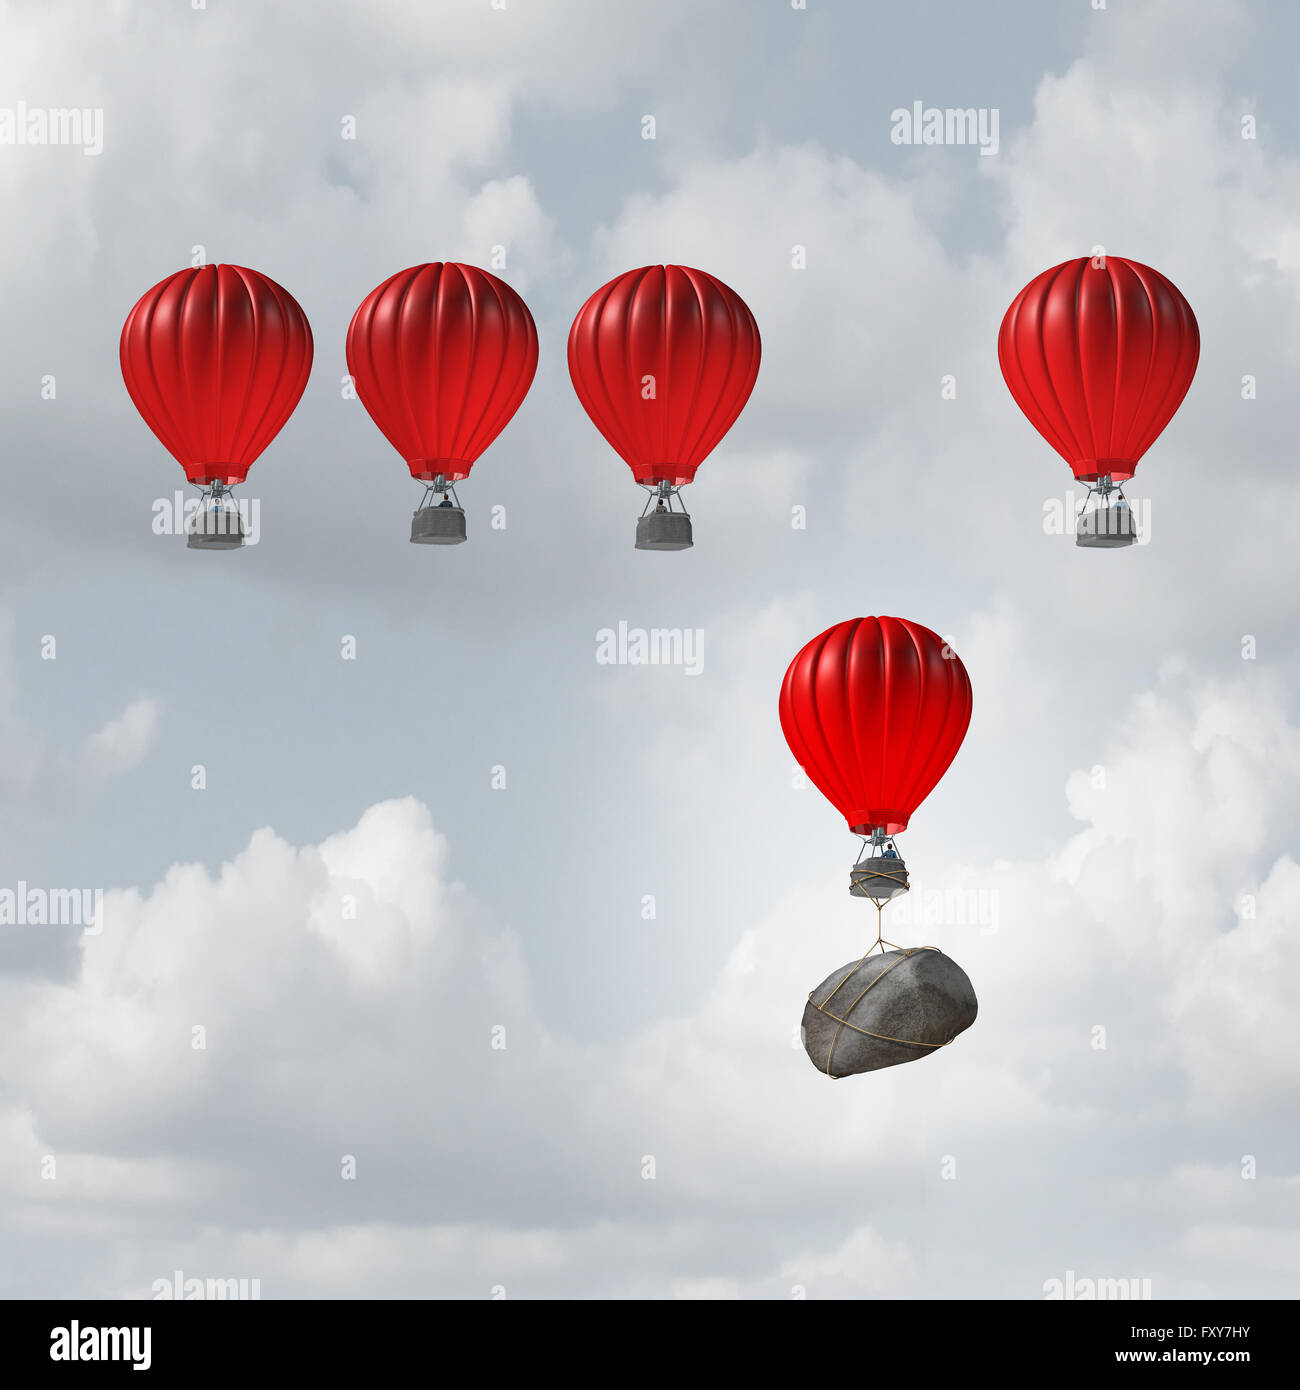 Competitive struggle and business disadvantage or disability concept as a group of hot air balloons racing to the - Stock Image